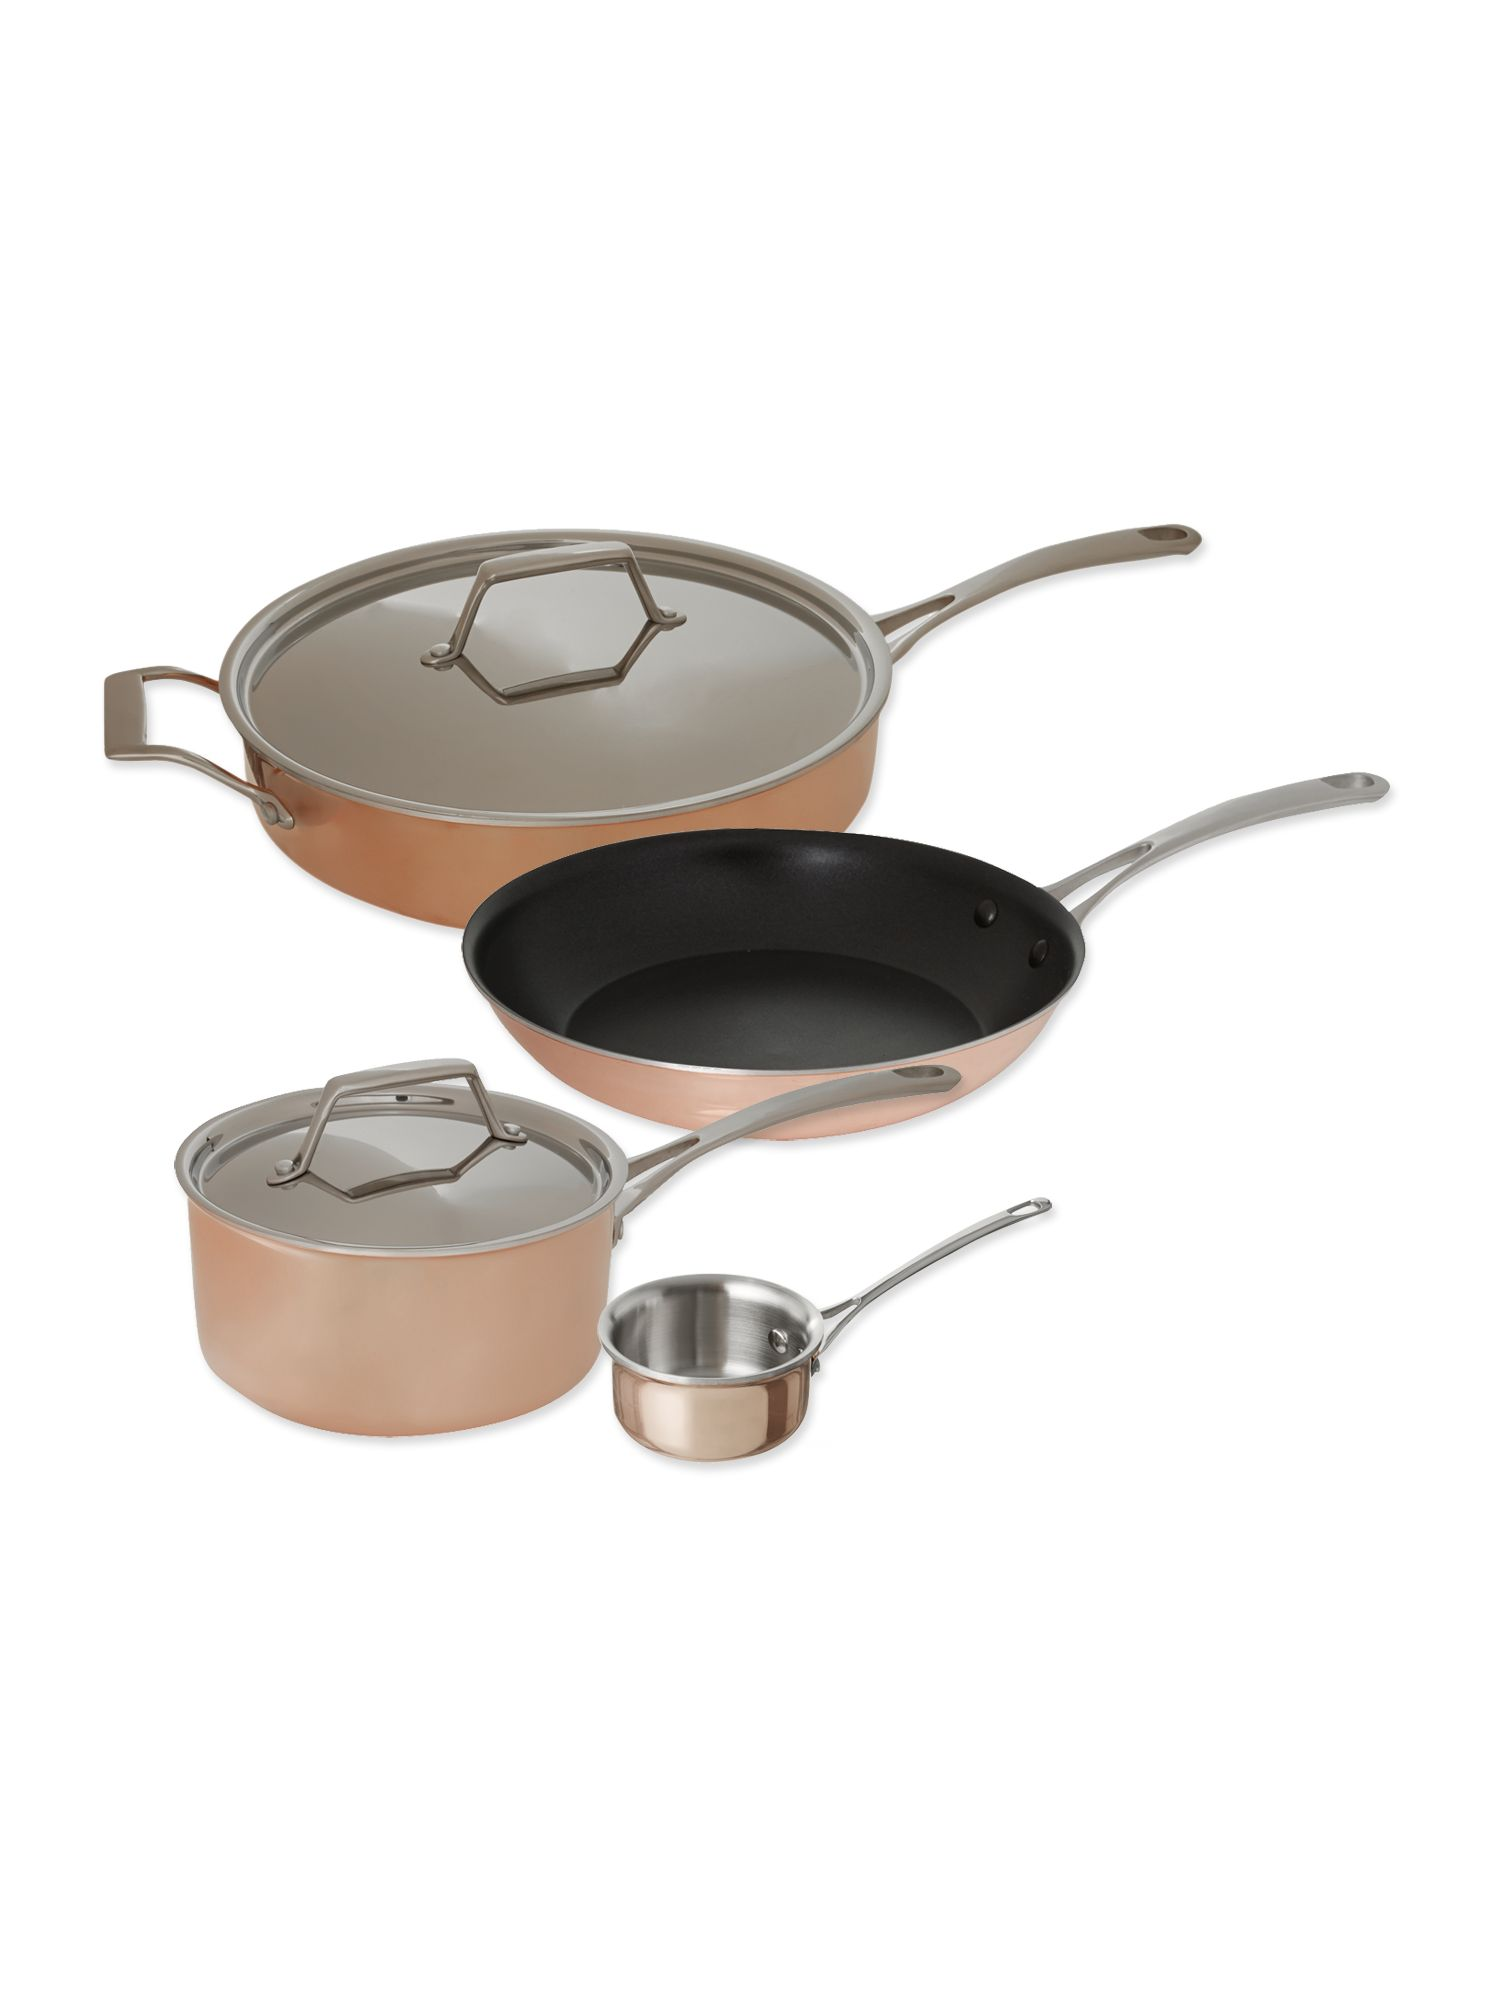 Copper tri ply cookware range